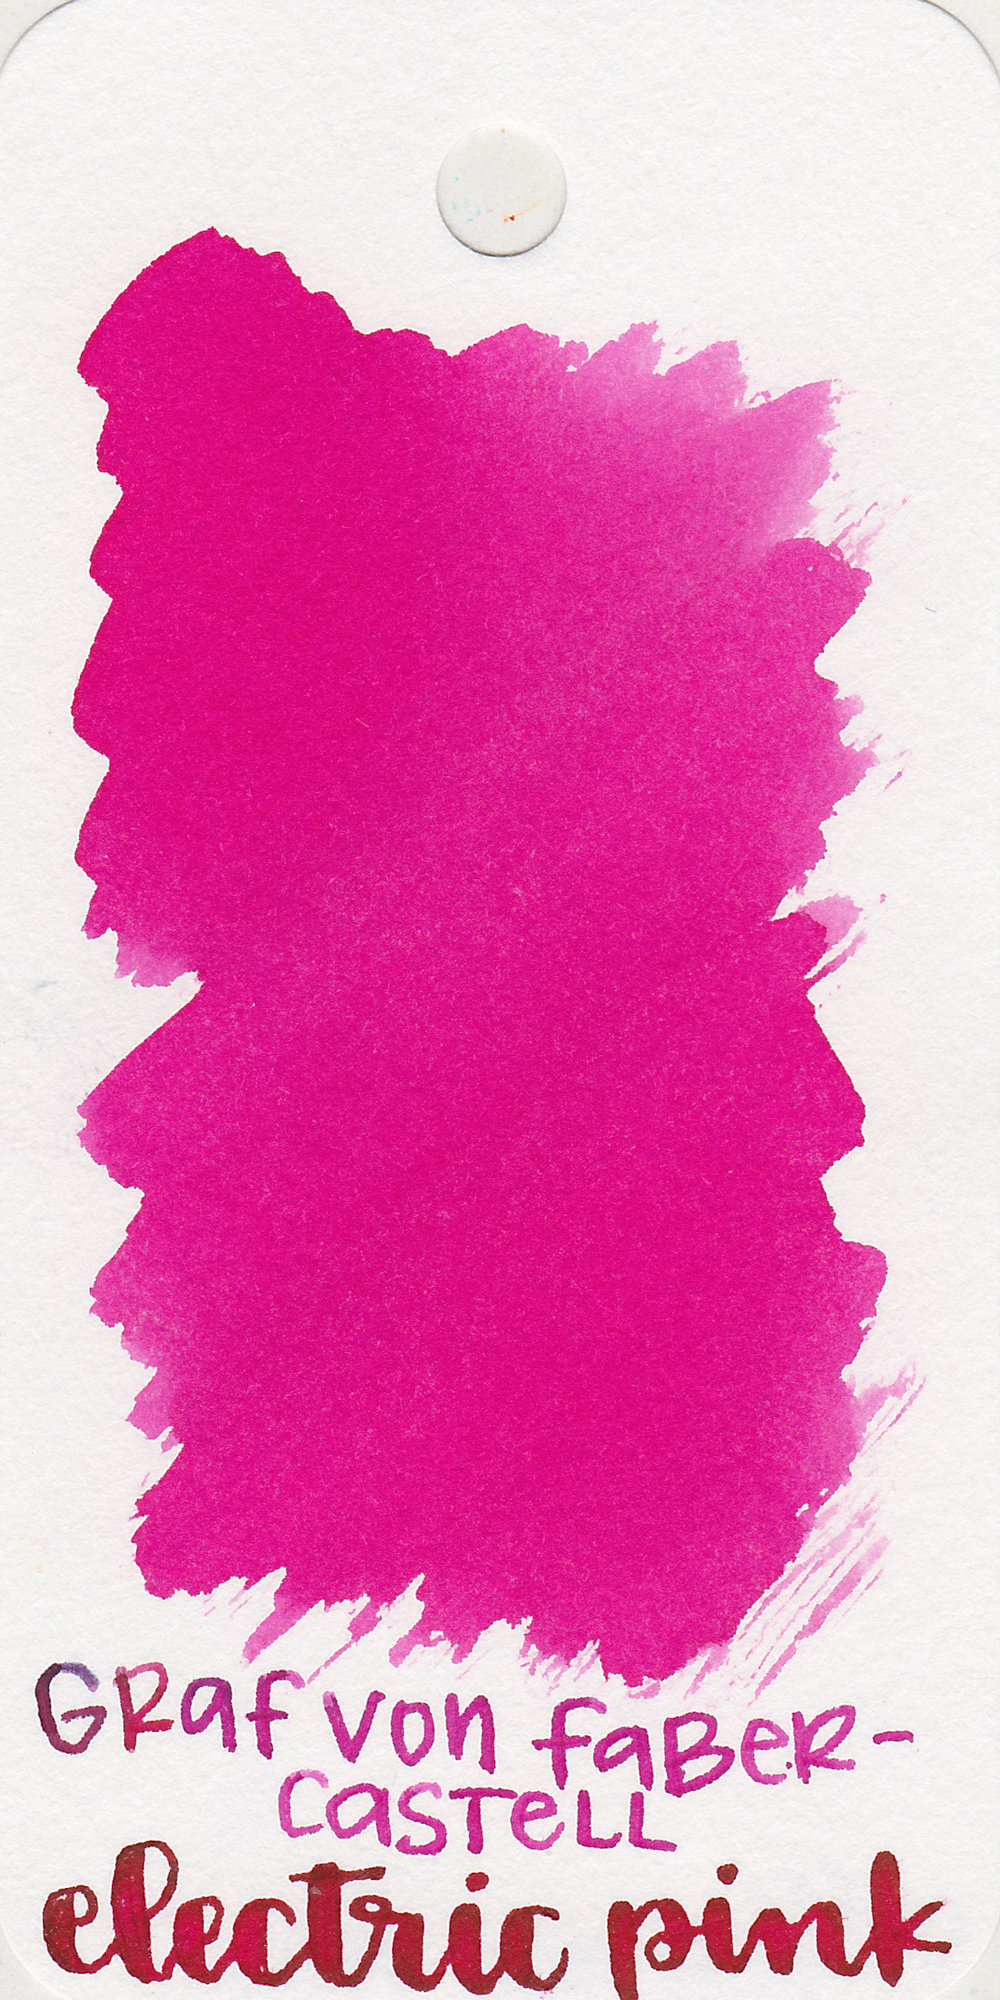 The color: - Electric Pink is a bright medium pink.